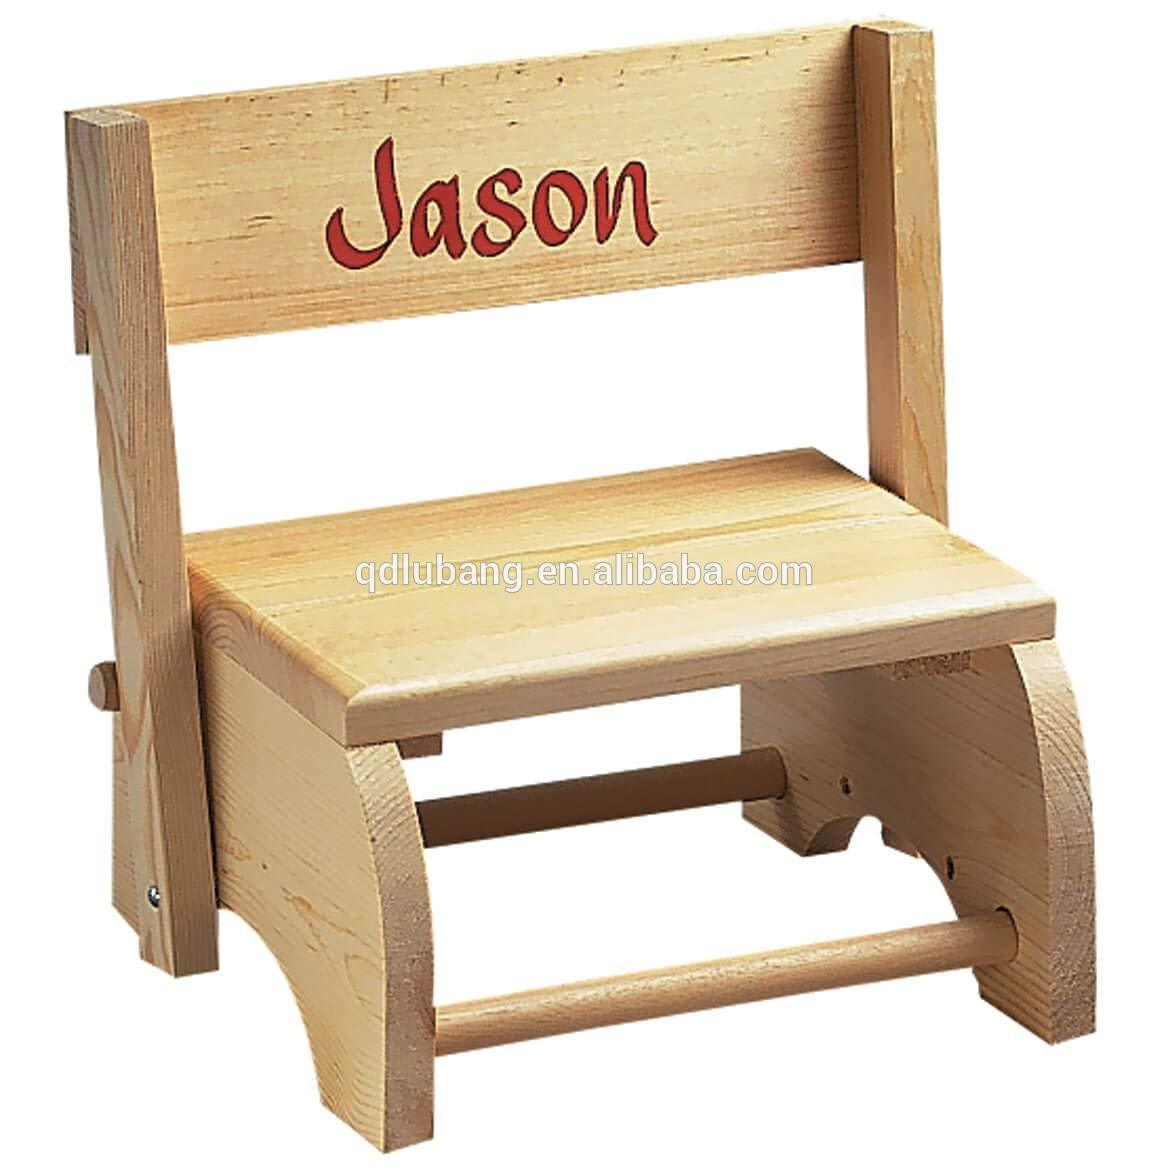 Wooden Personalized Children Chair Step